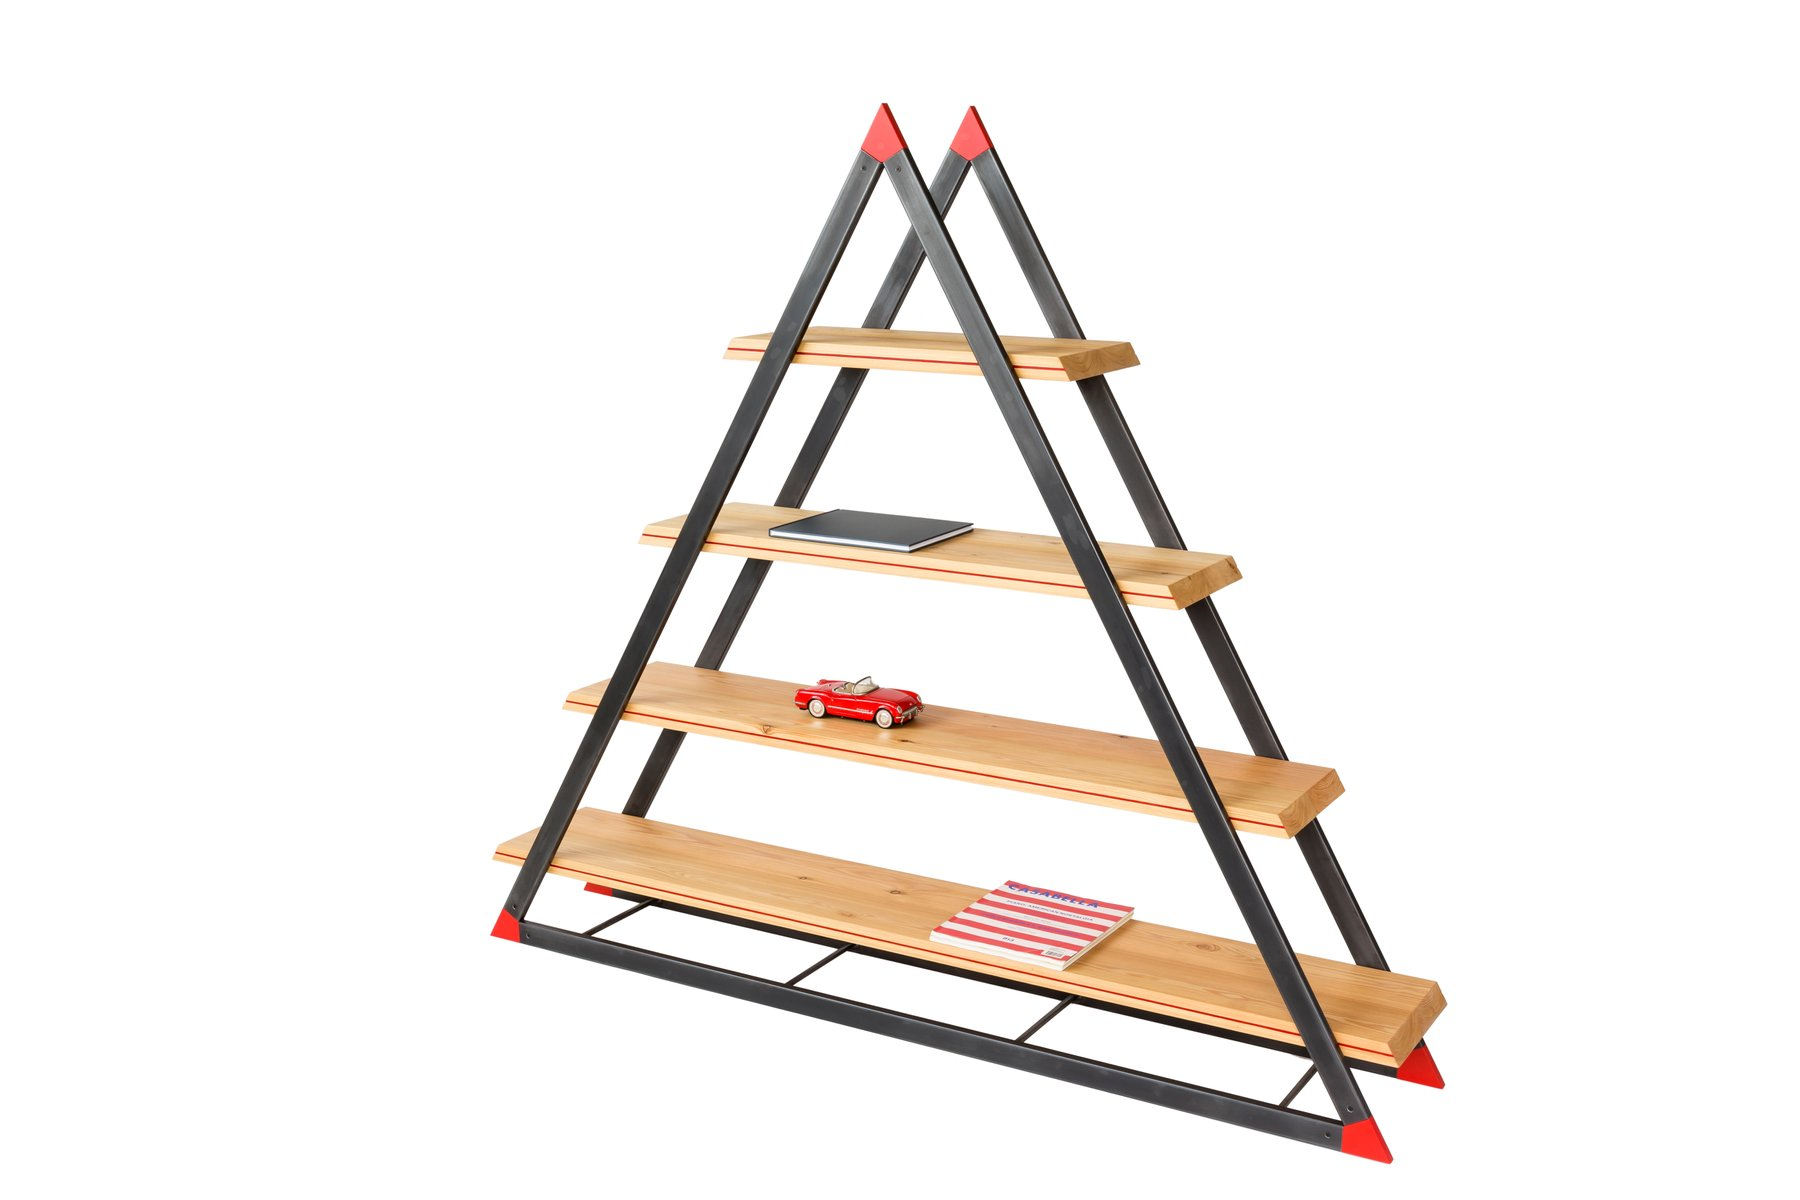 Noon triangular bookcase by dozen design for sale at pamono - Triangular bookshelf ...